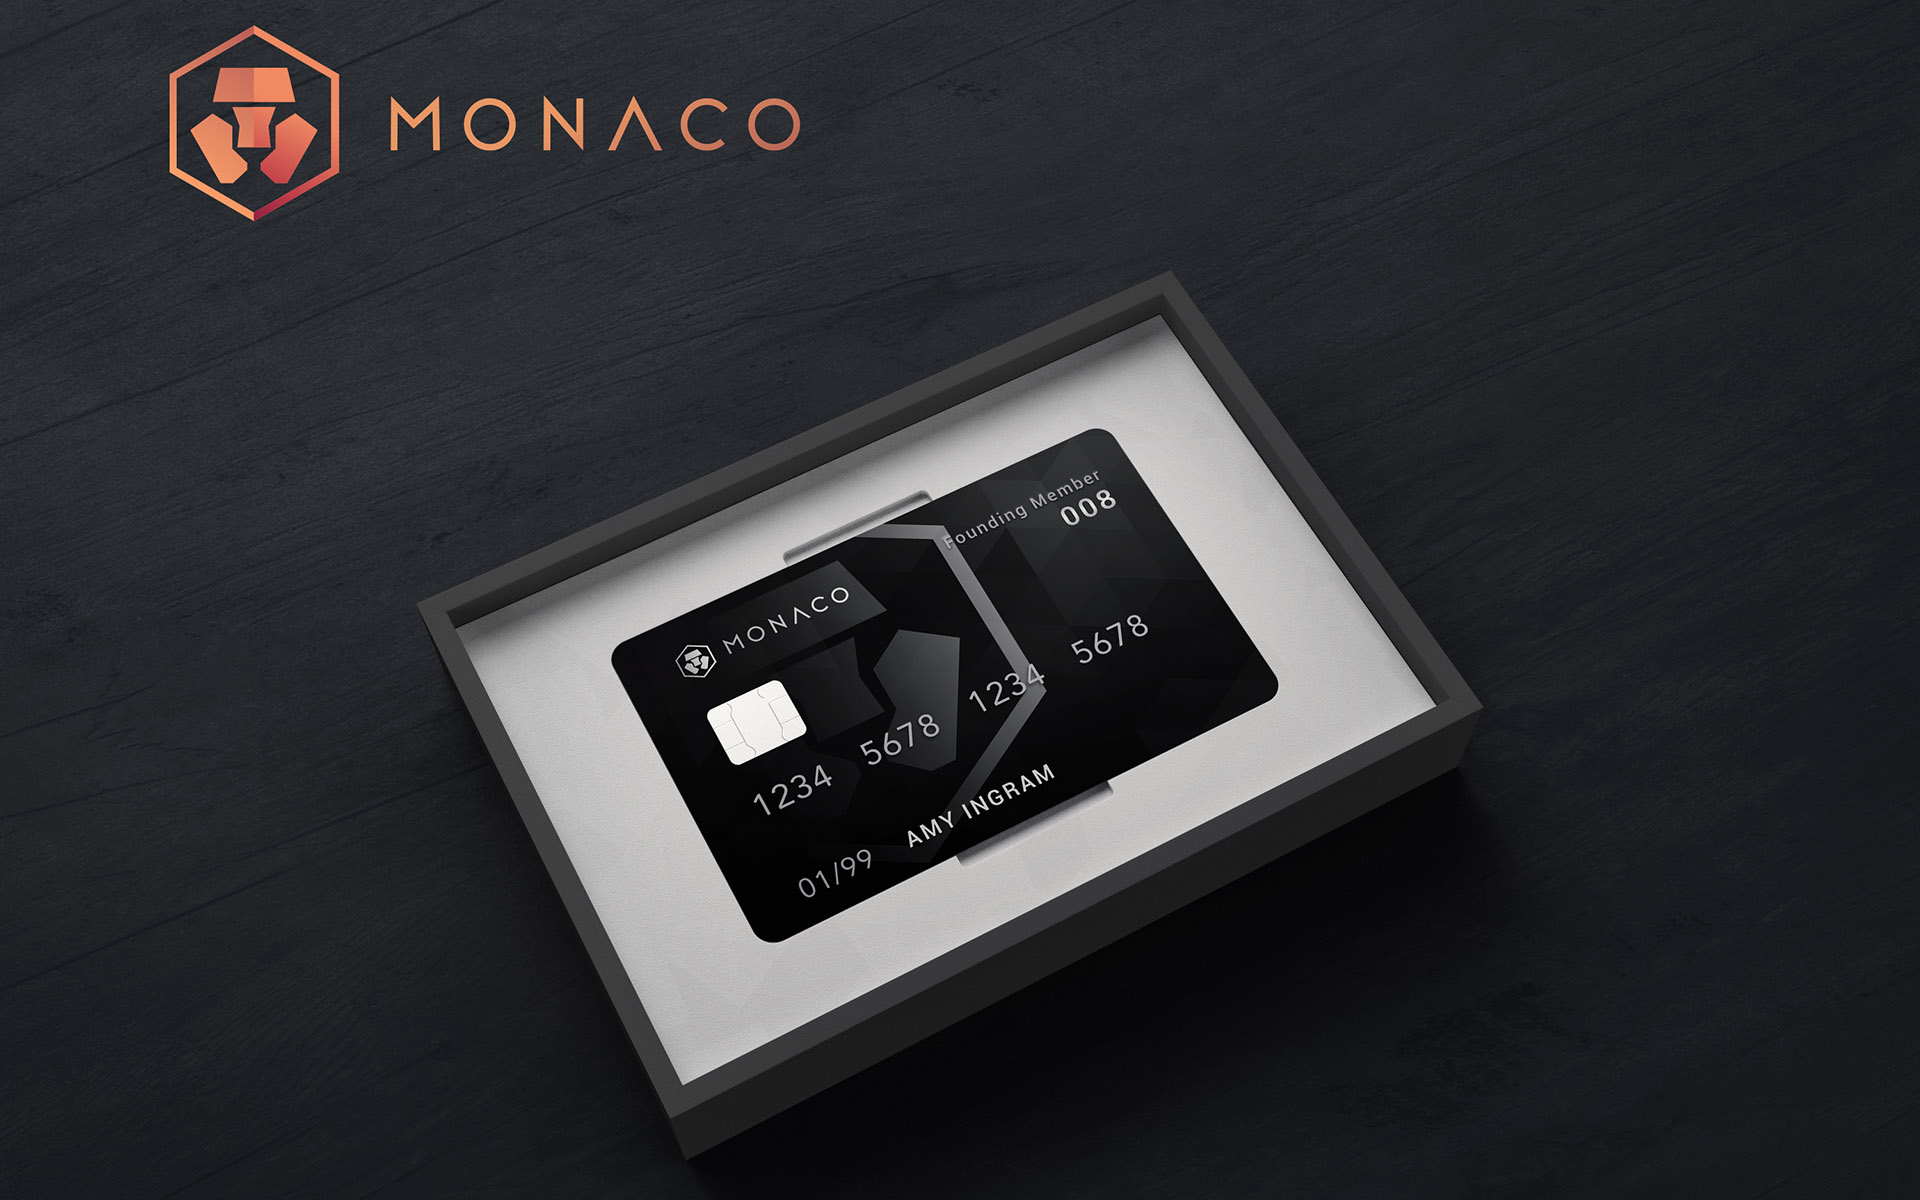 Monaco Token to Begin Trading on Bittrex on July 1st, 6pm US Pacific Time